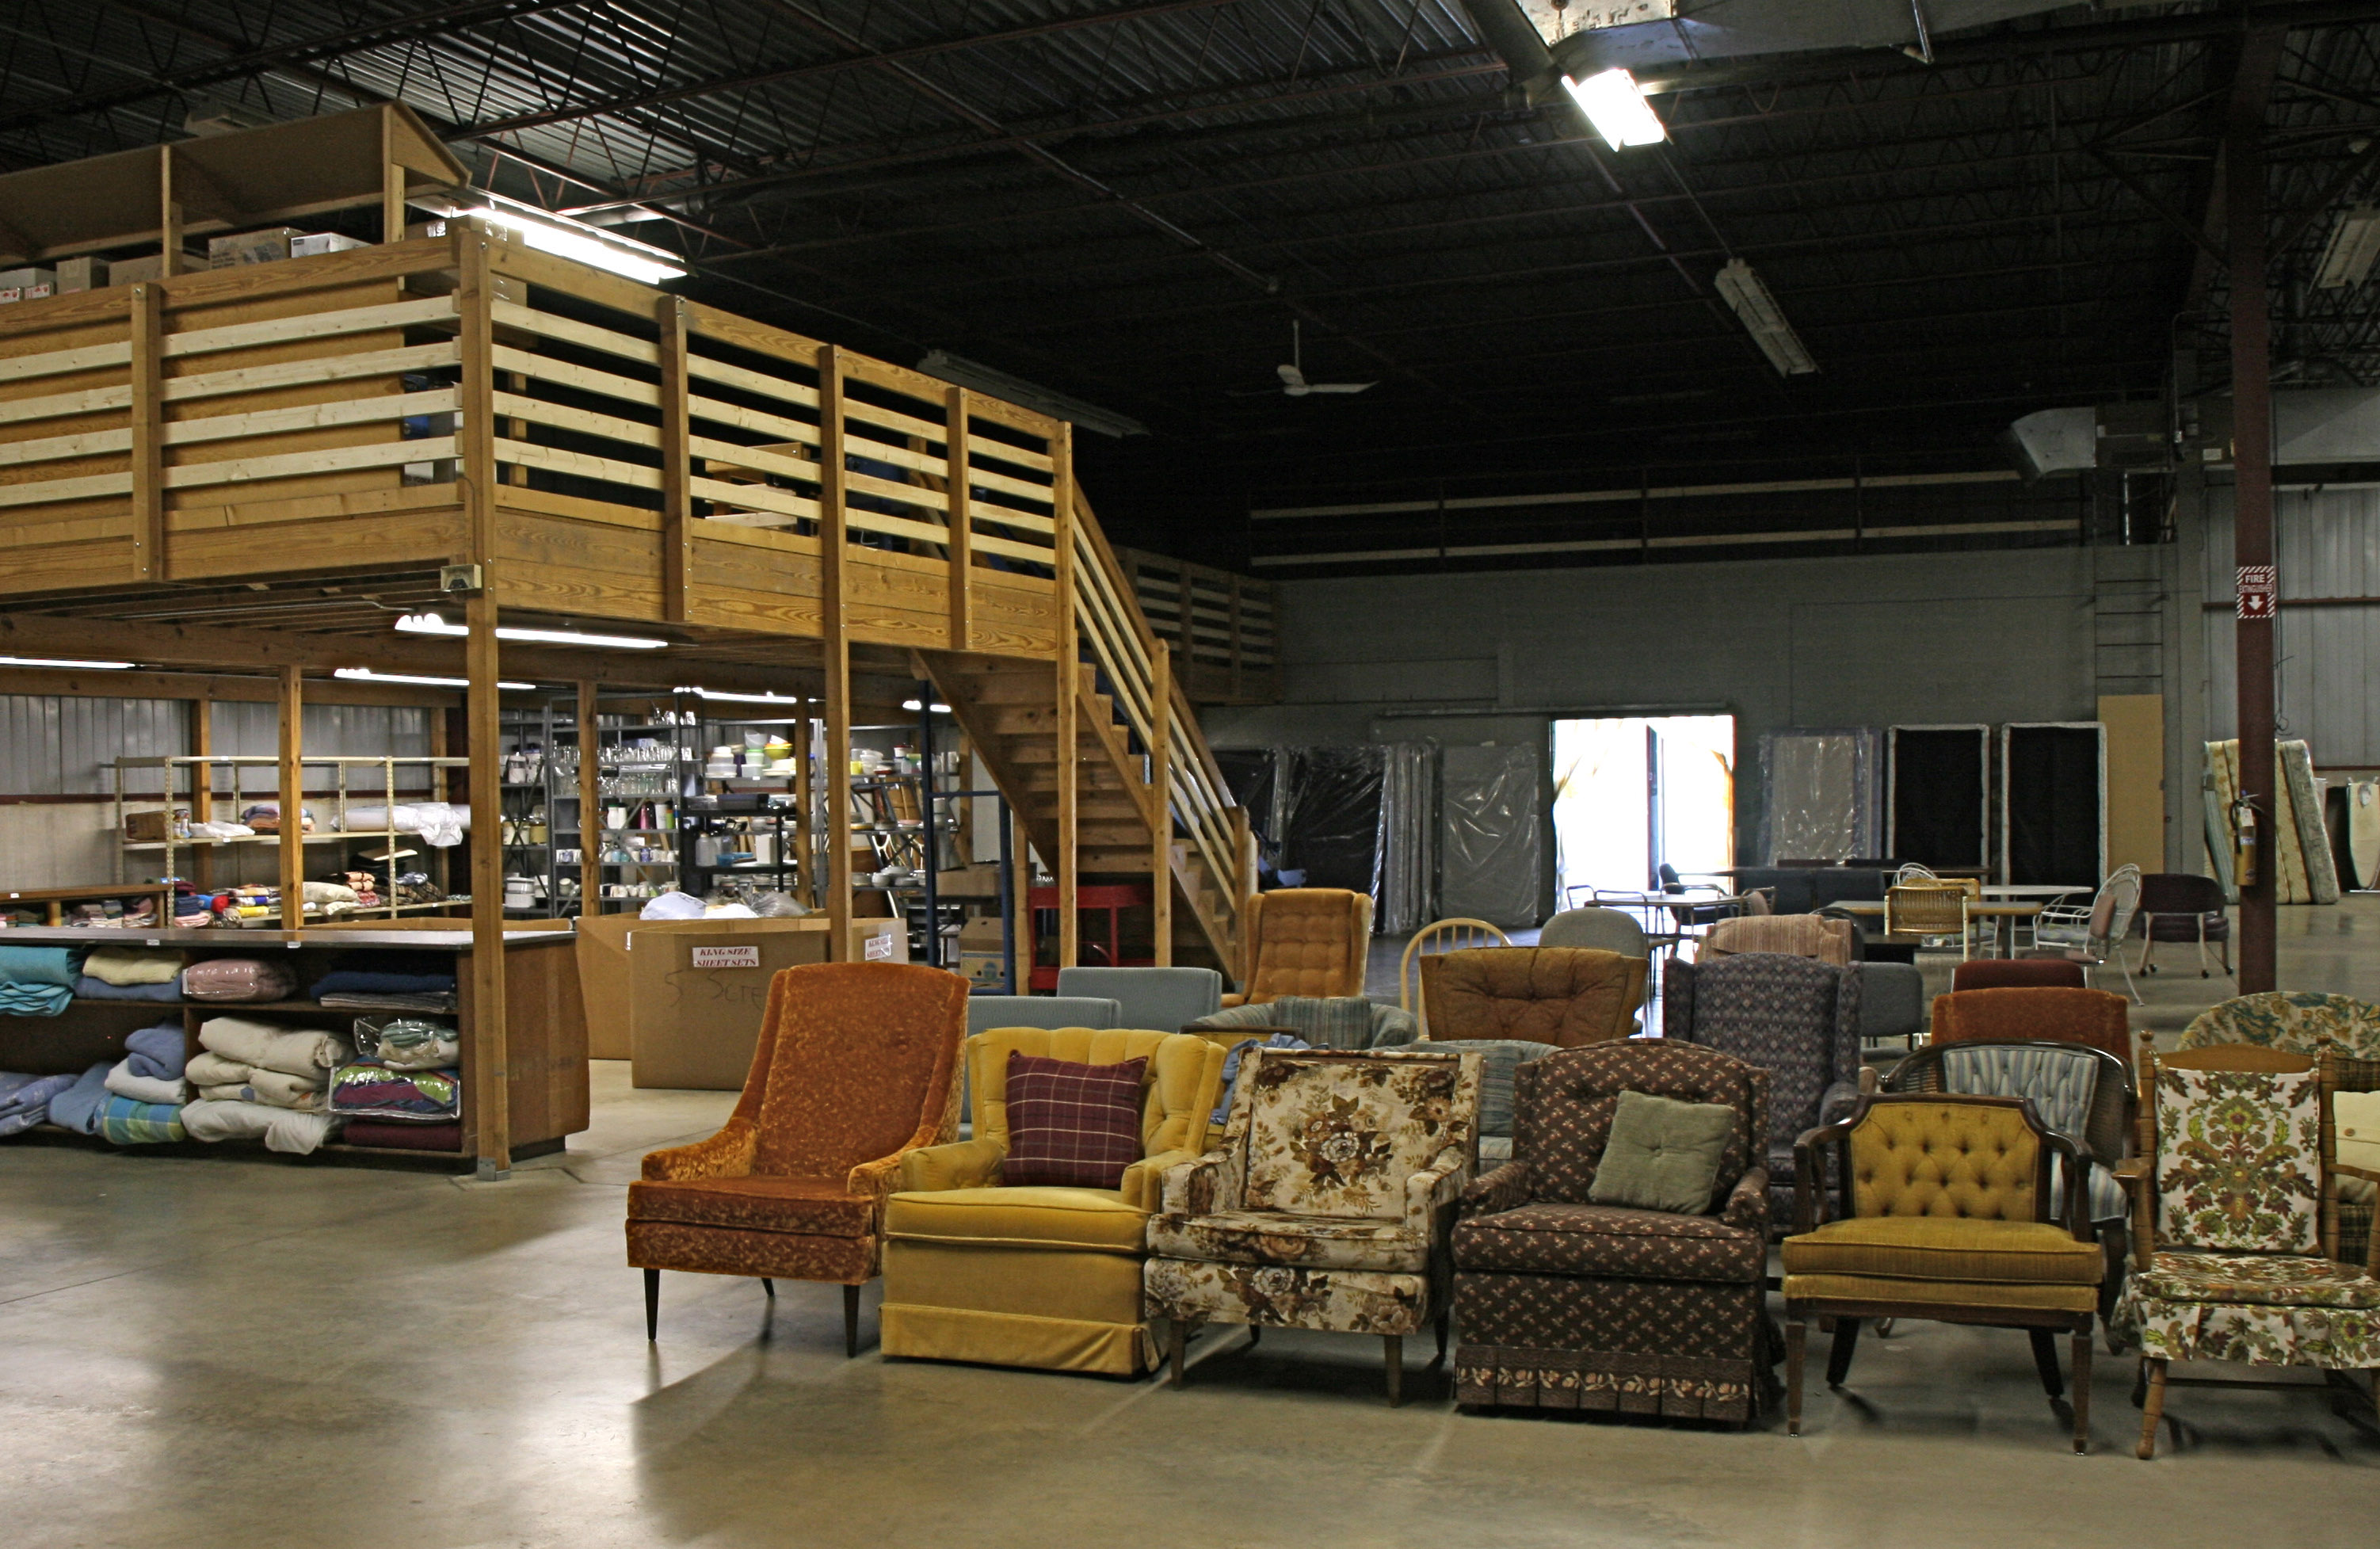 Furniture Warehouse Birmingham Mustard Seed Offers Household Goods For Families Facing